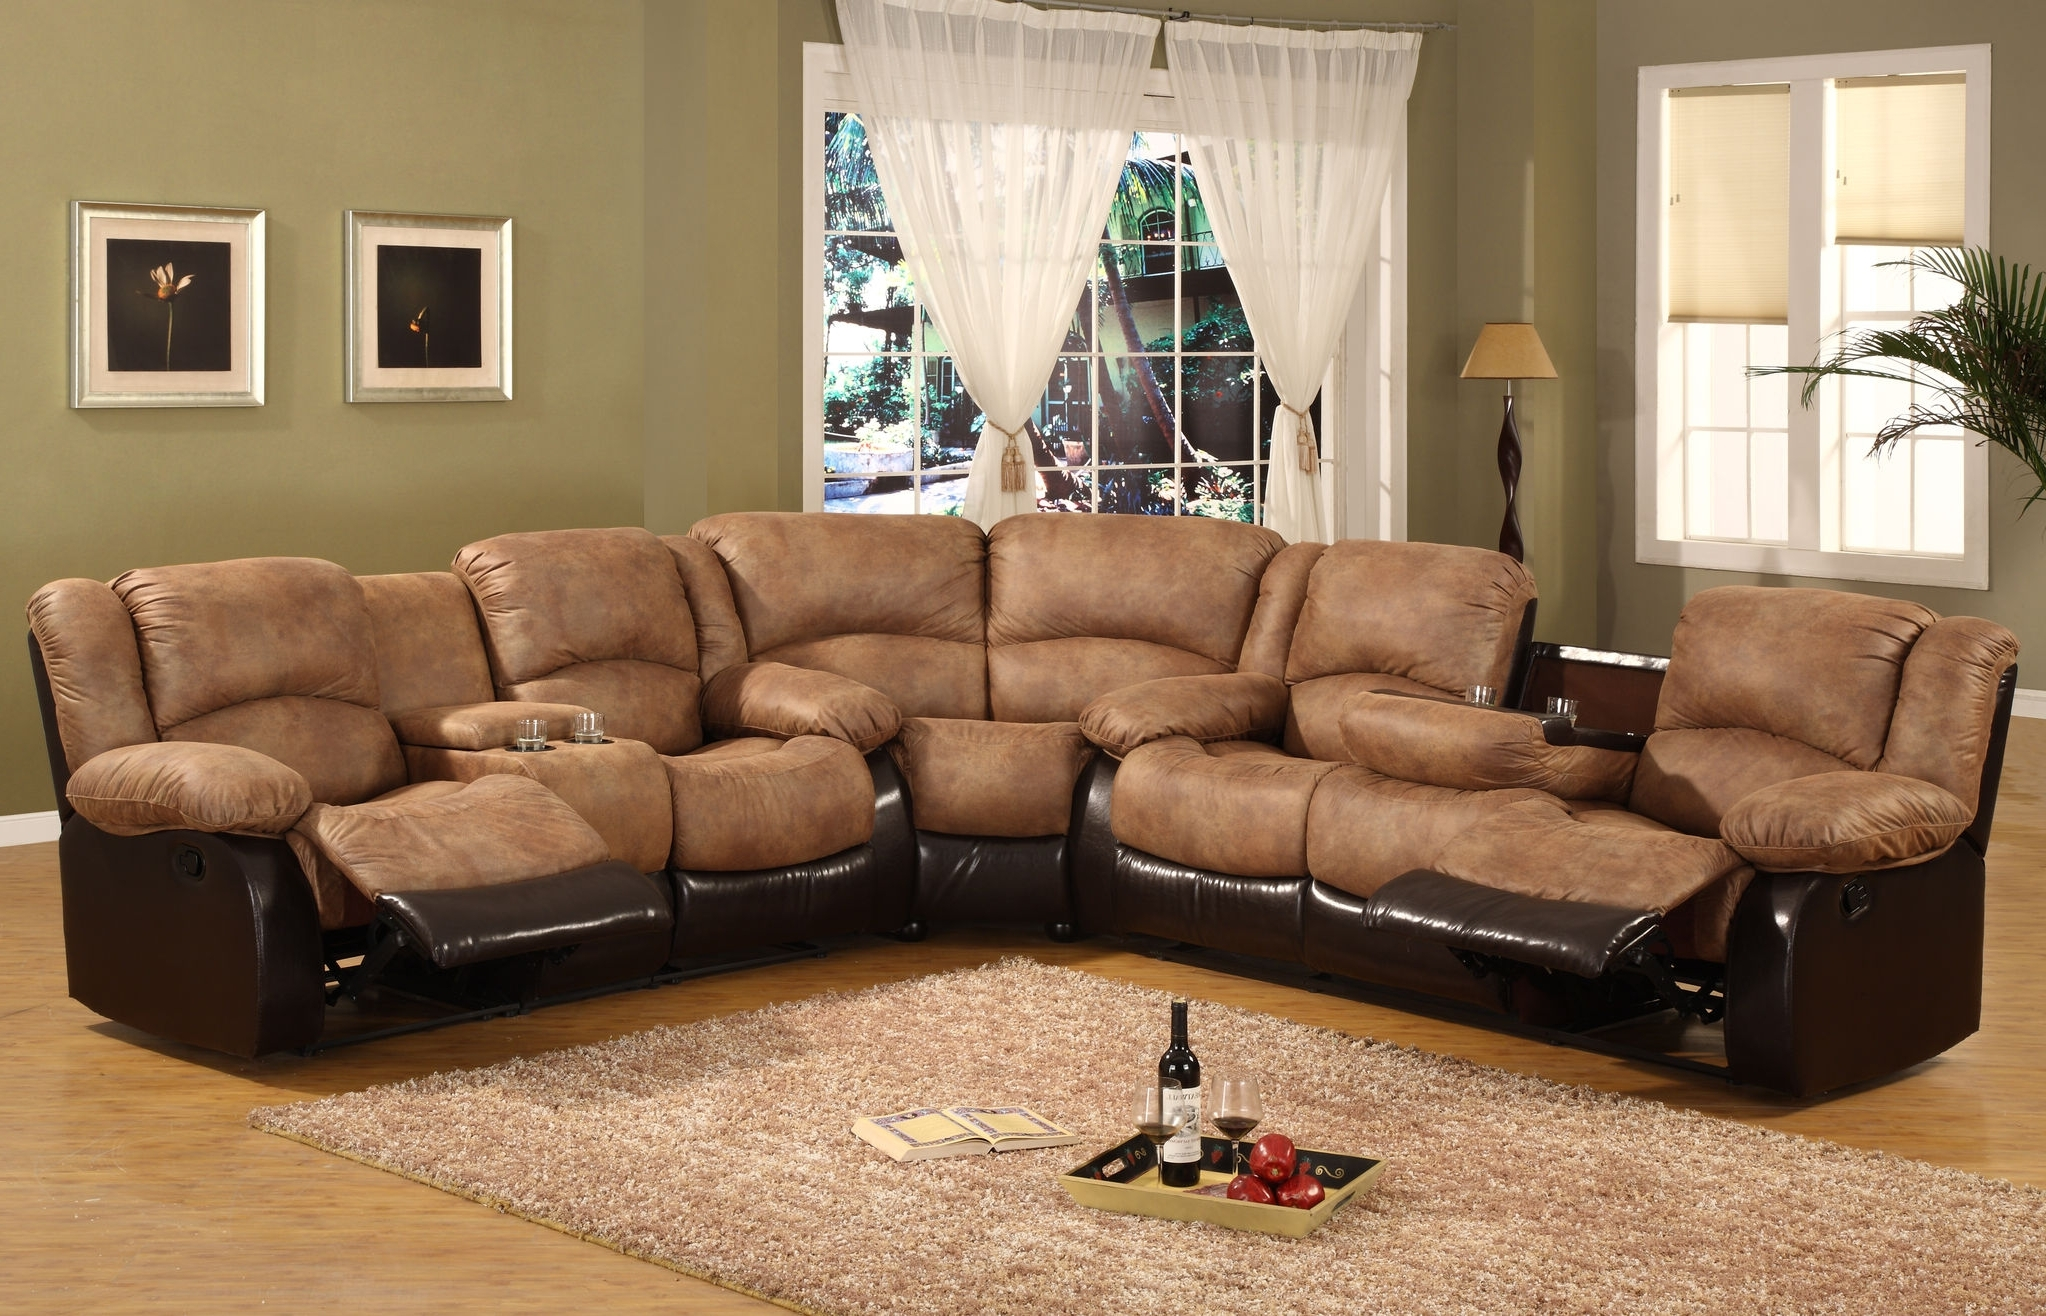 Widely Used Sofa: Idea Lazy Boy Reclining Sofa Reclining Sofas, Lazy Boy With Regard To Lazyboy Sectional Sofas (View 15 of 15)